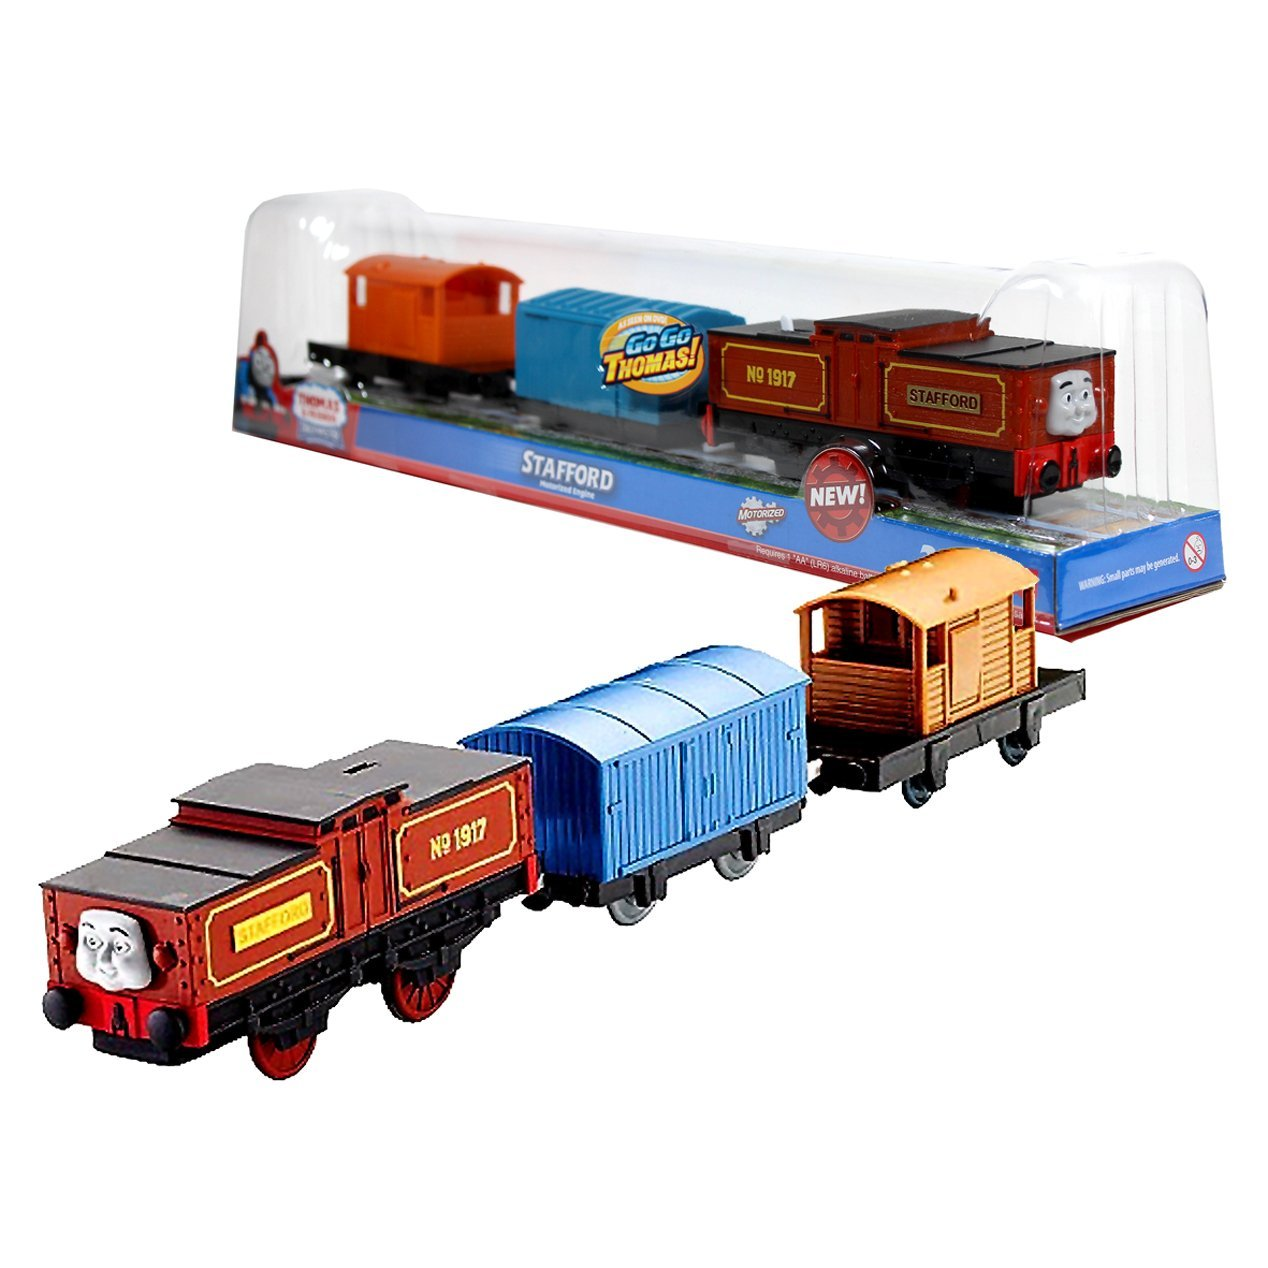 "Fisher Price Year 2012 Thomas and Friends DVD Series ""Go Go Thomas!"" Trackmaster Motorized Railway Battery Powered Tank Engine 3 Pack Train Set - Battery-Electric Shunting Engine STAFFORD with Blue Van and Orange Brake-Van"